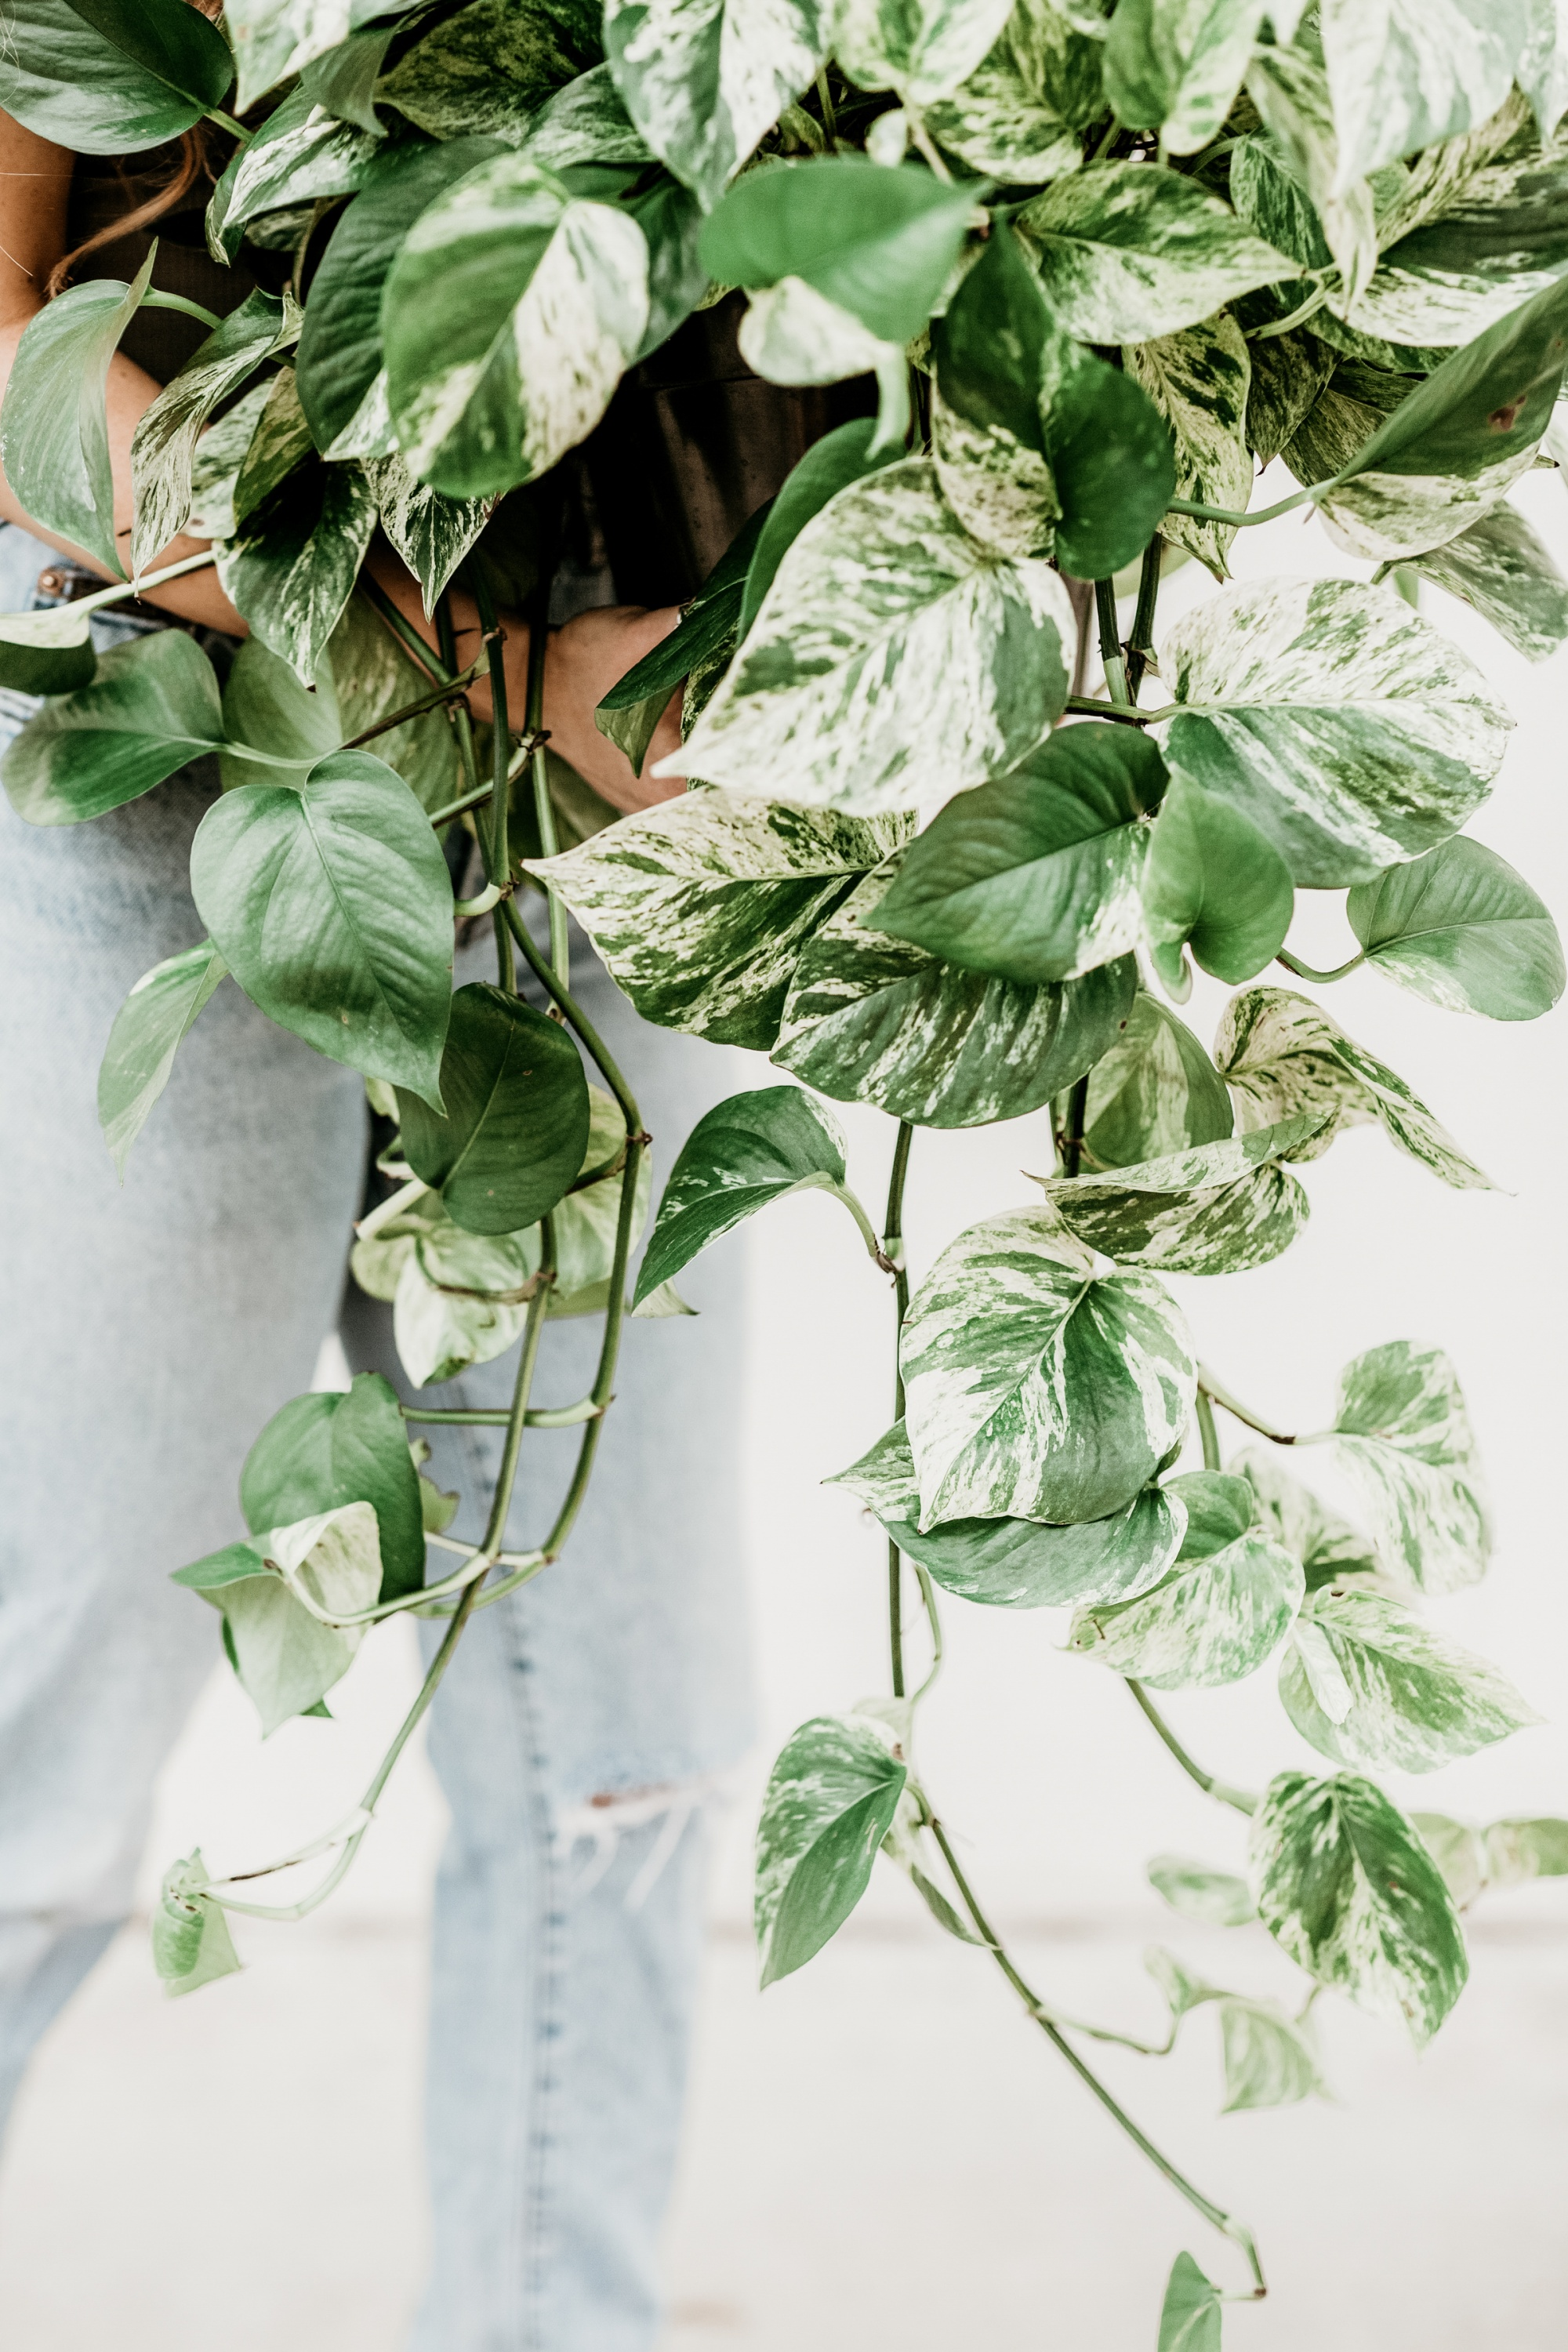 Add A Pop of Spring To Your Home woman carrying leafy green plant, affordable spring home decor